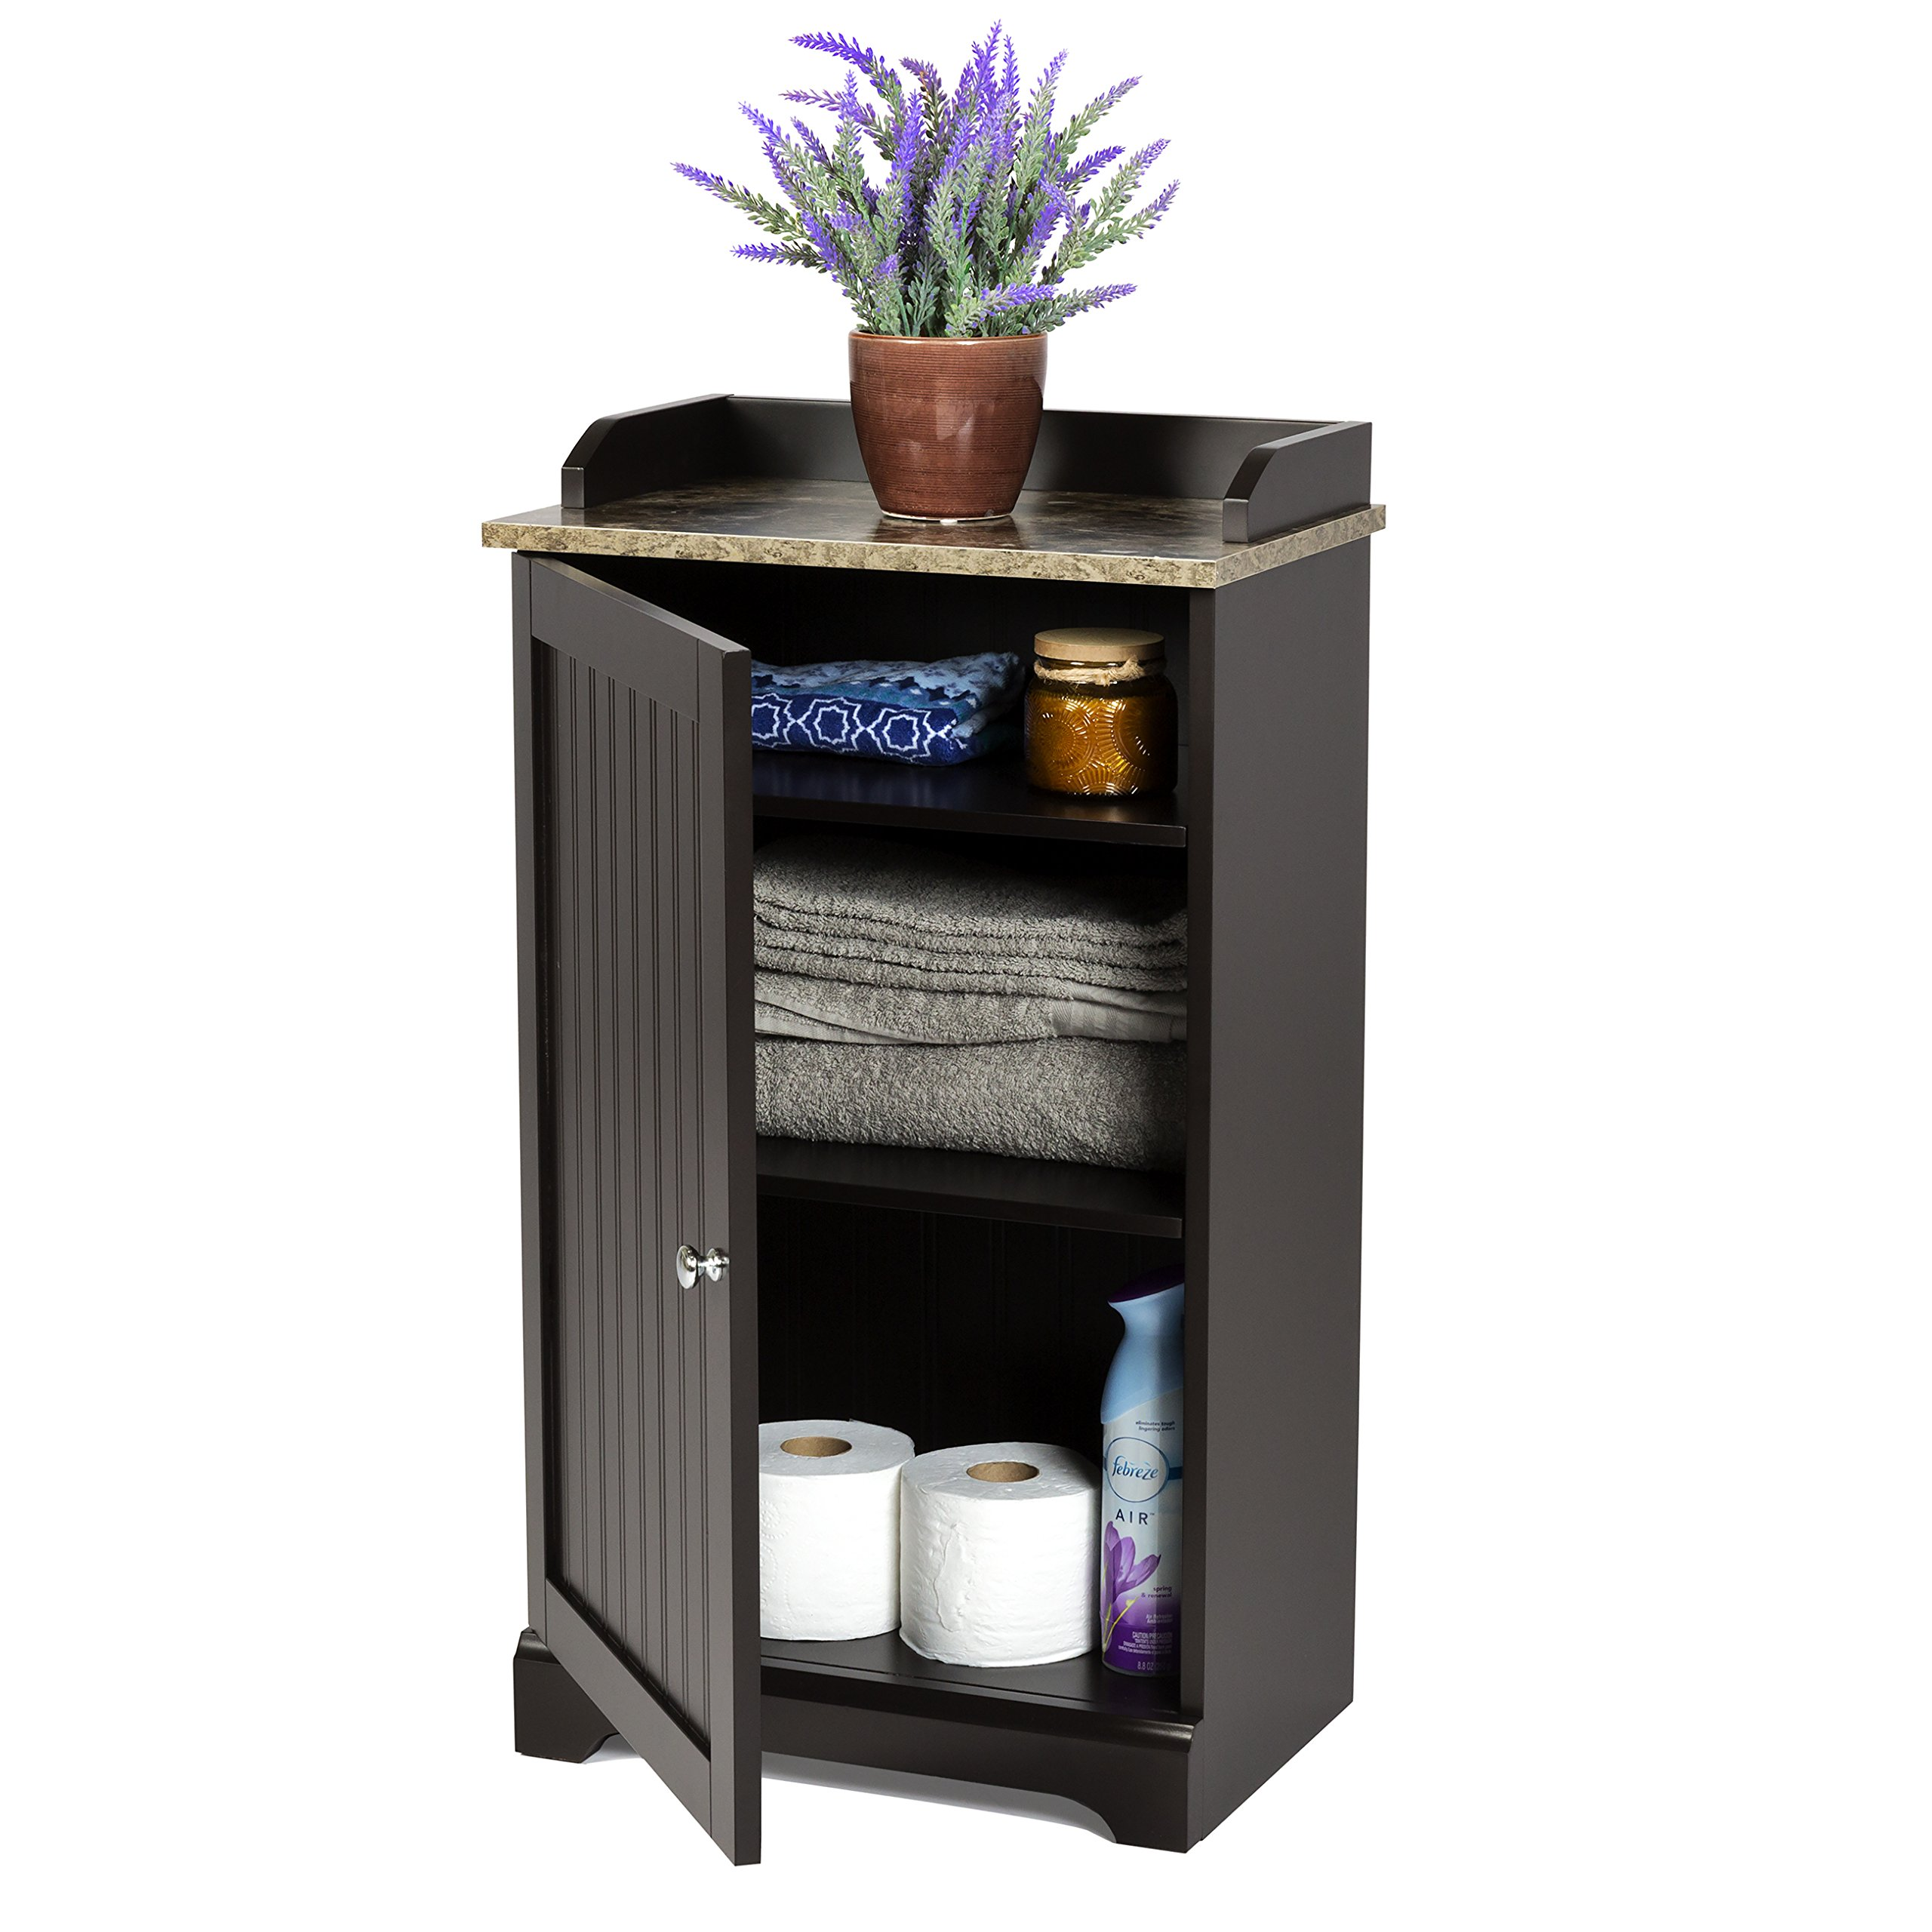 Best Choice Products Bathroom Floor Storage Cabinet w/ Versatile Door - Espresso Brown